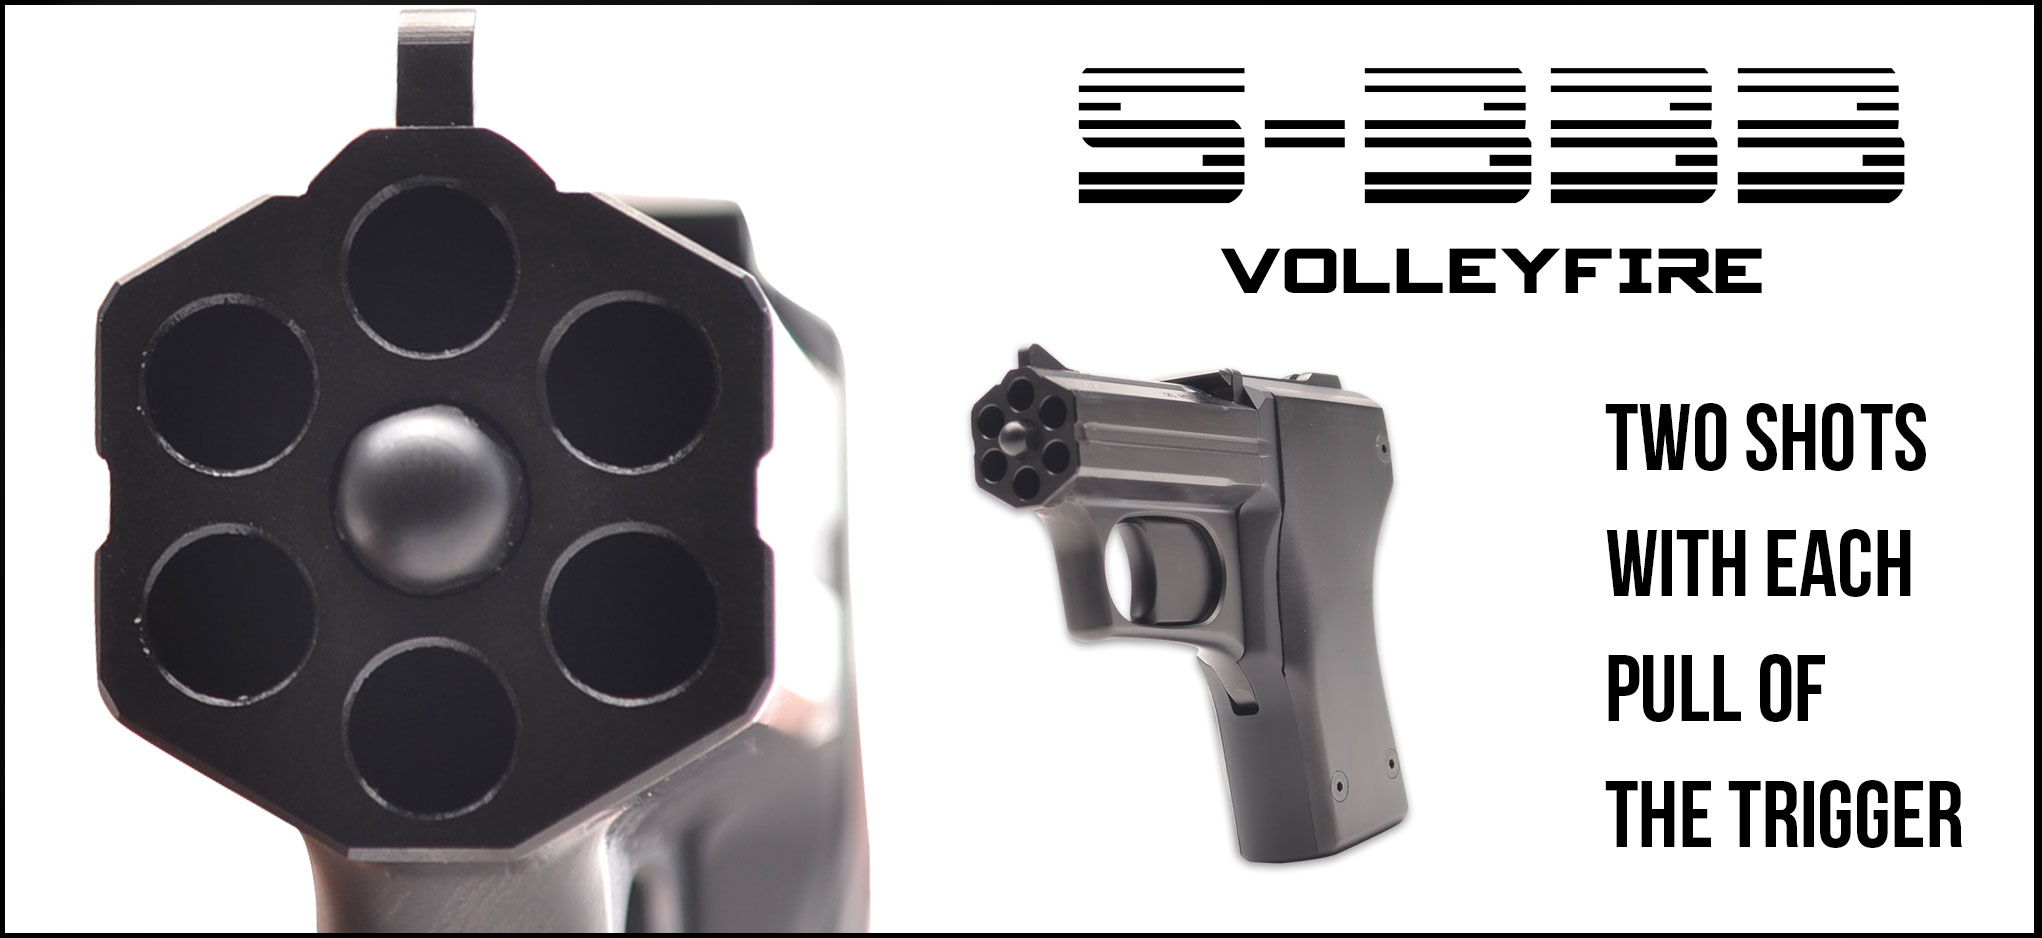 s-333-volleyfire.png